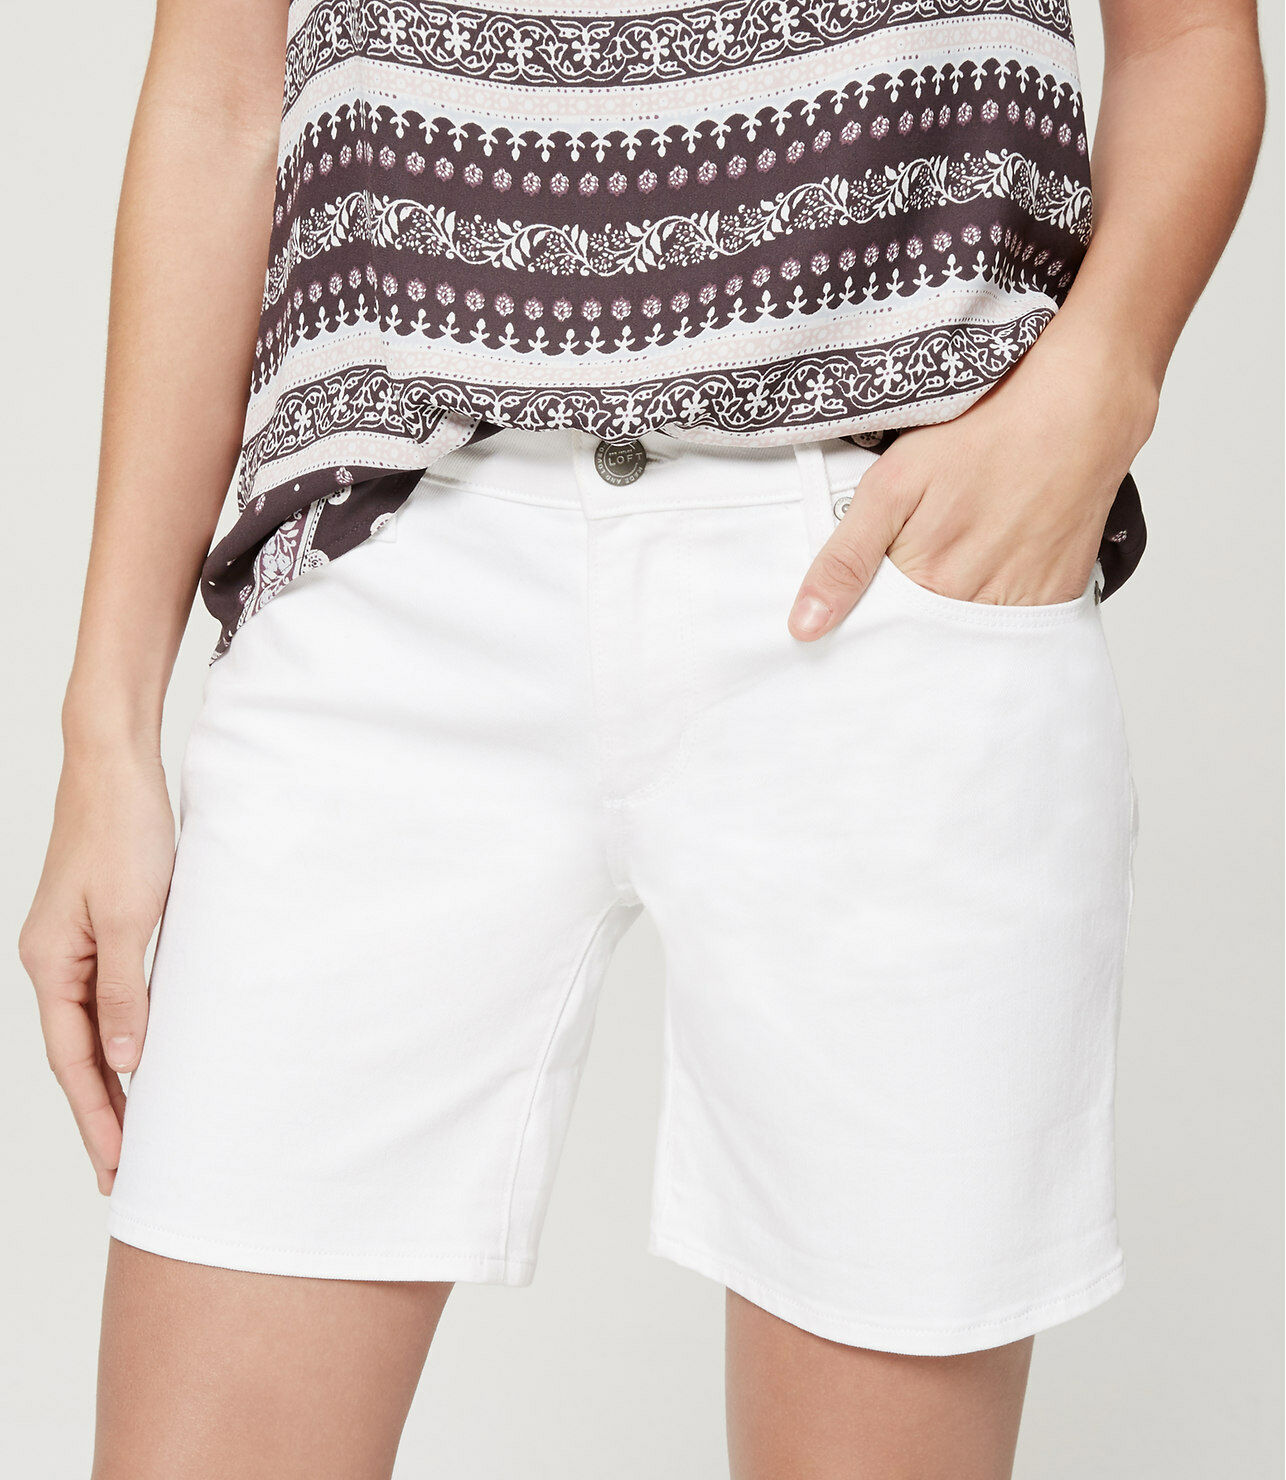 Ann Taylor LOFT Relaxed Skinny Denim Shorts in White Size 24, 25, 26, 28,30 NWT